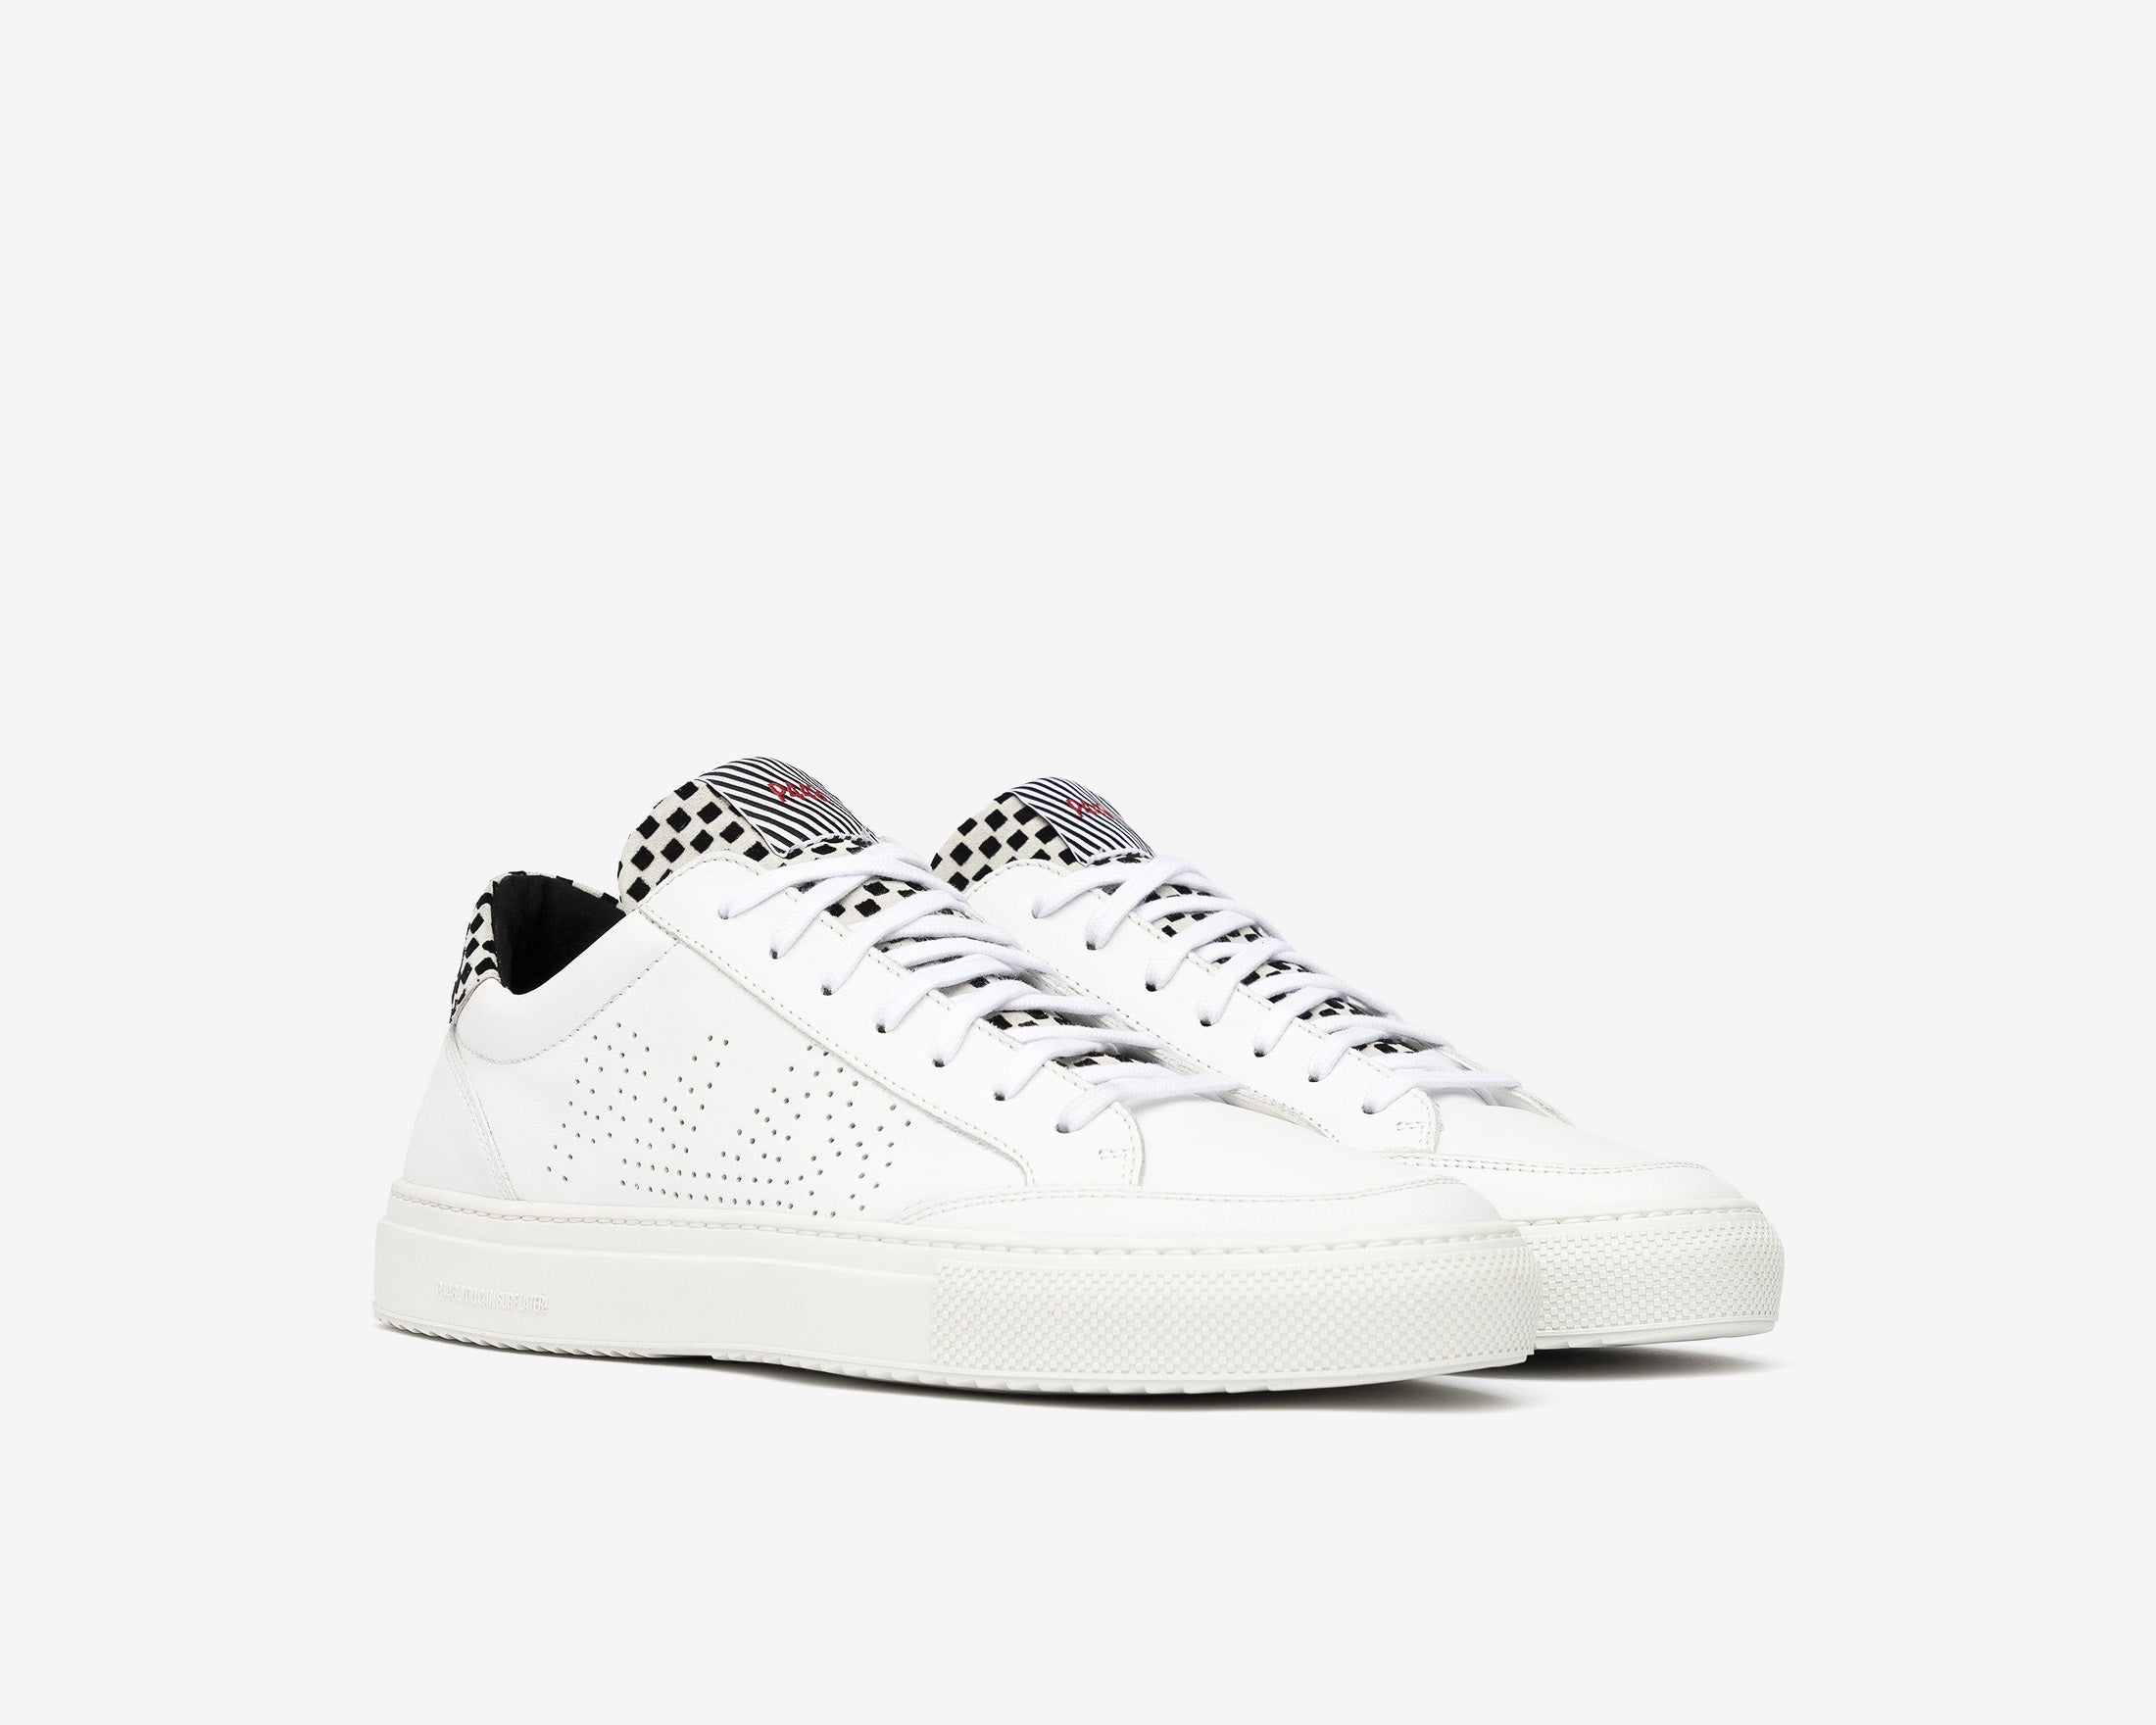 Soho Pull-on Sneaker in White Check - Side